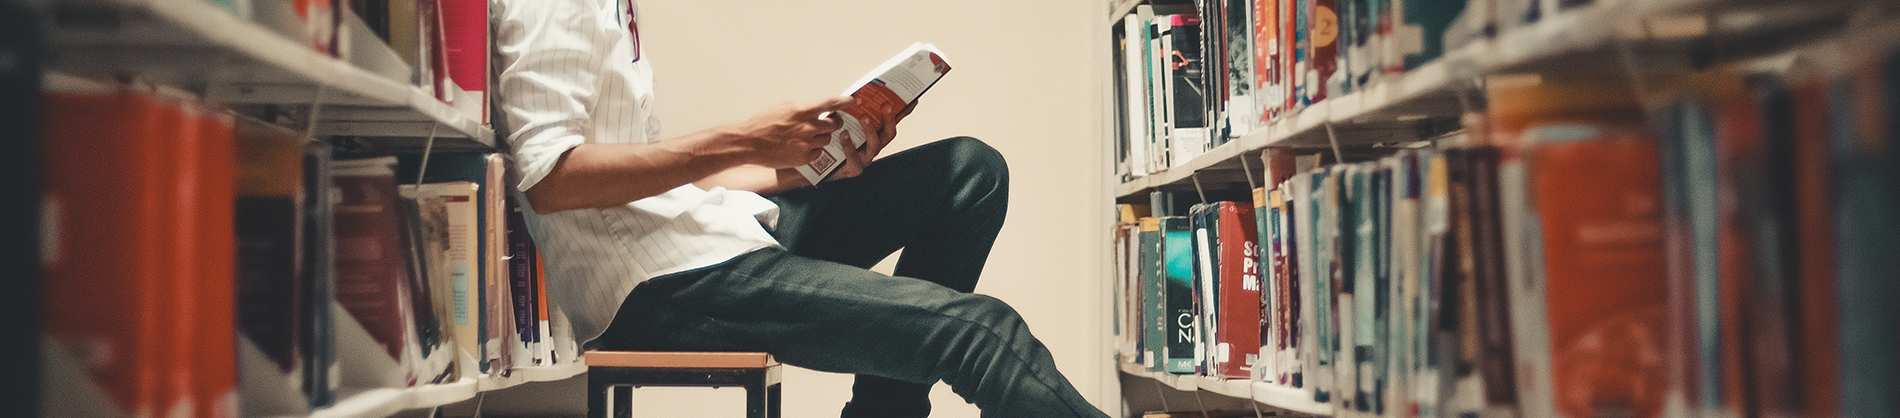 A man sat on a stool leaning on a book case reading